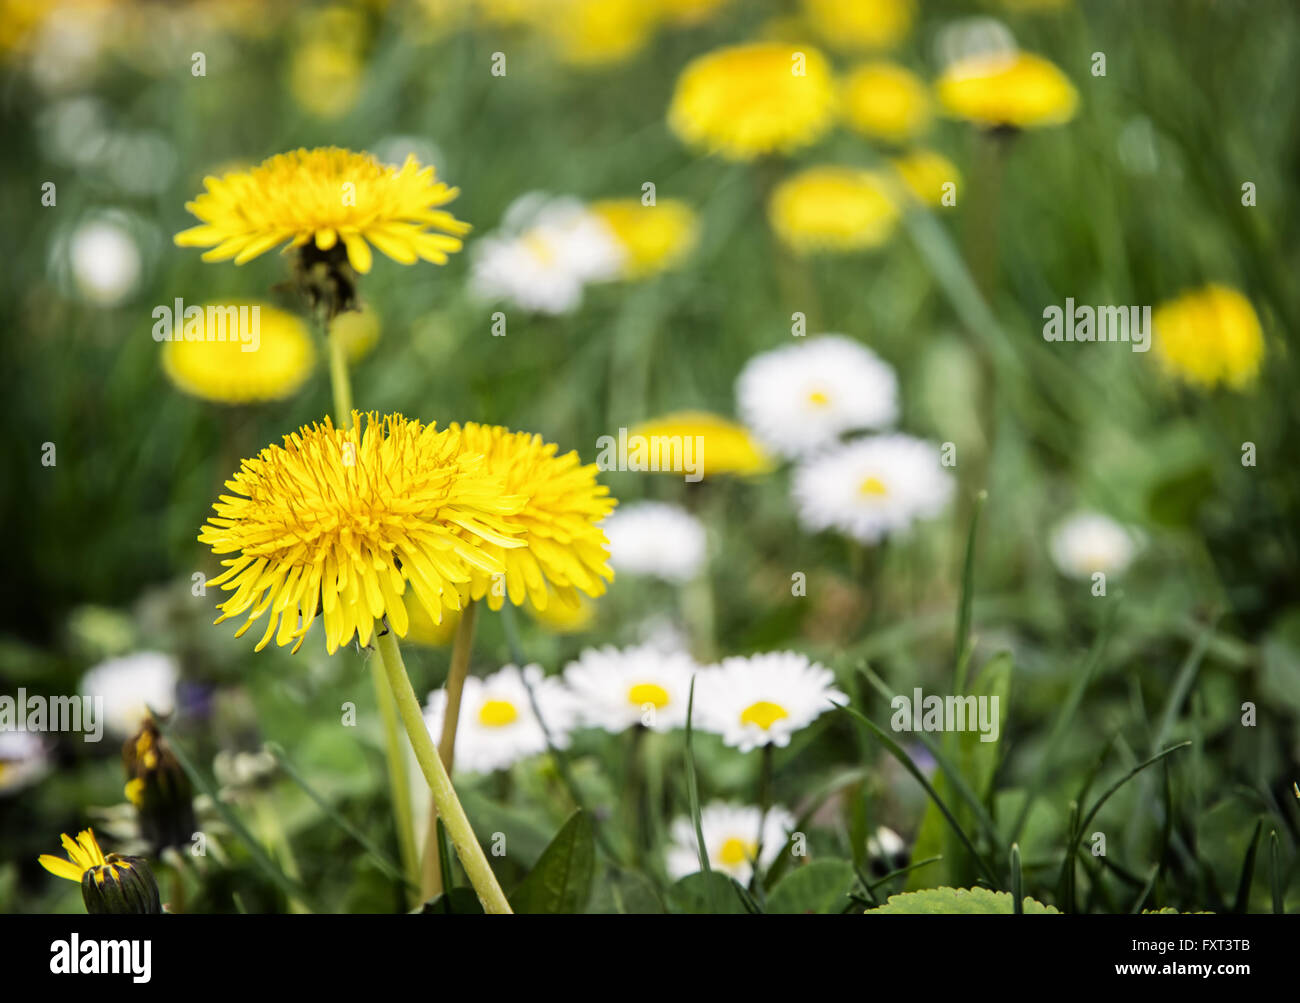 Yellow dandelions and ox-eye daisies in the meadow. Close up natural scene. Stock Photo